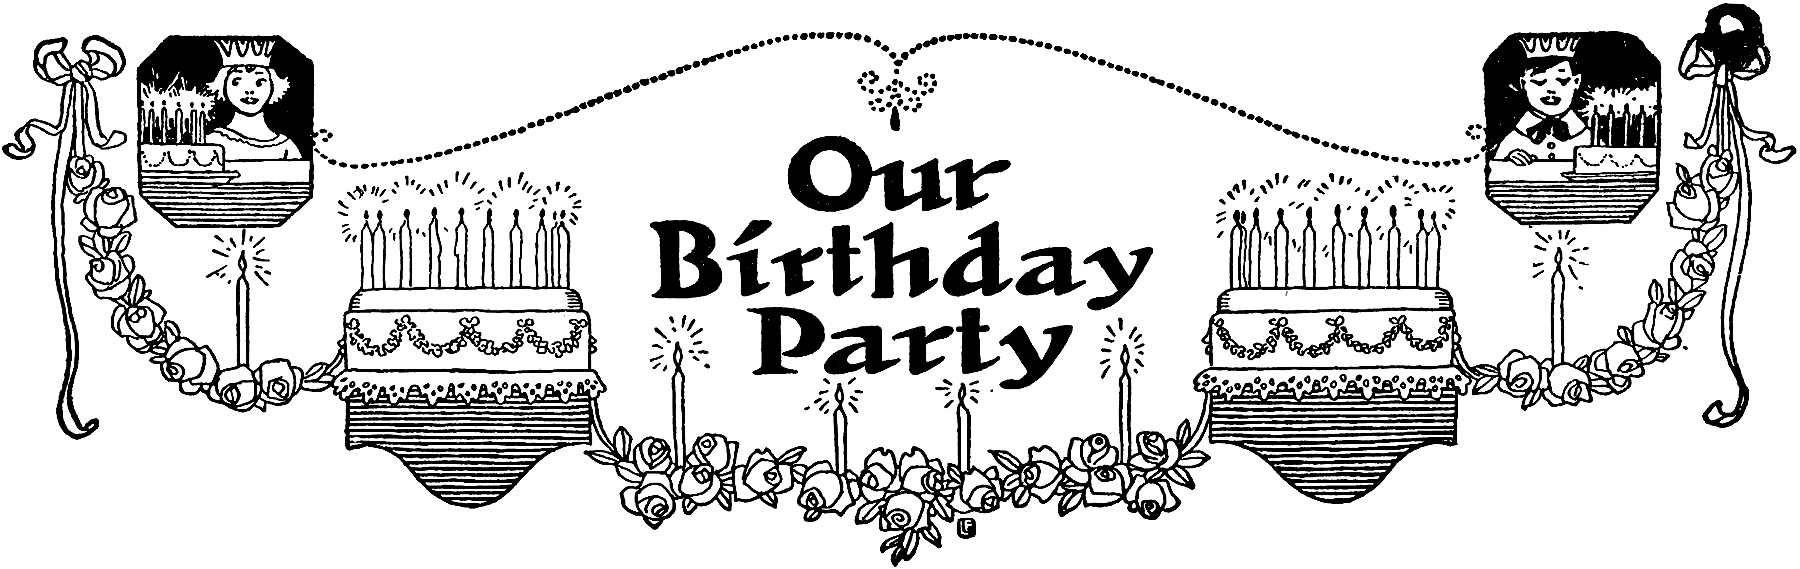 Vintage Birthday Party Clip Art The Graphics Fairy